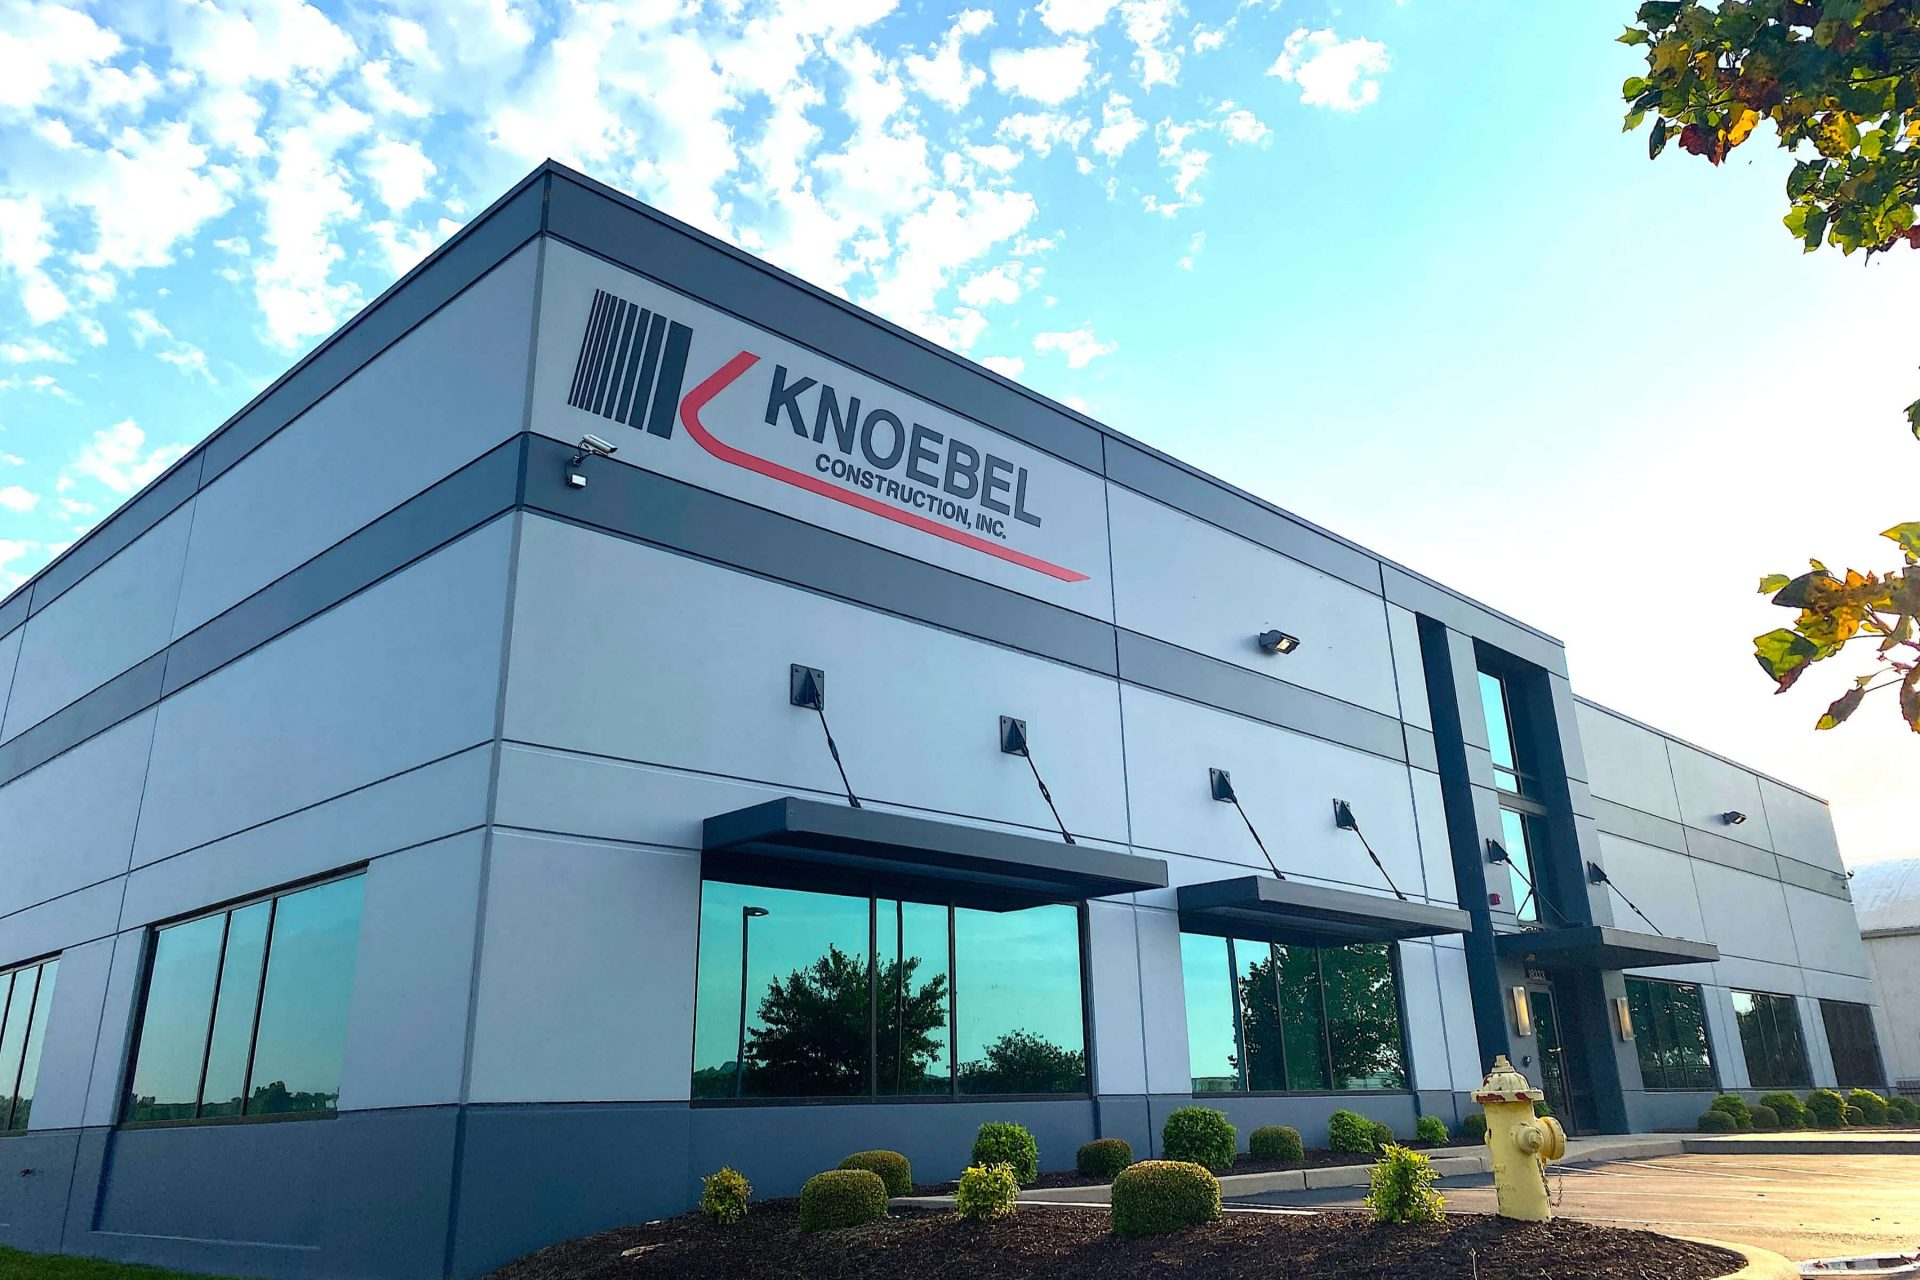 Knoebel Constructions celebrates 40th anniversary, begins 19,200-square-foot headquarters expansion